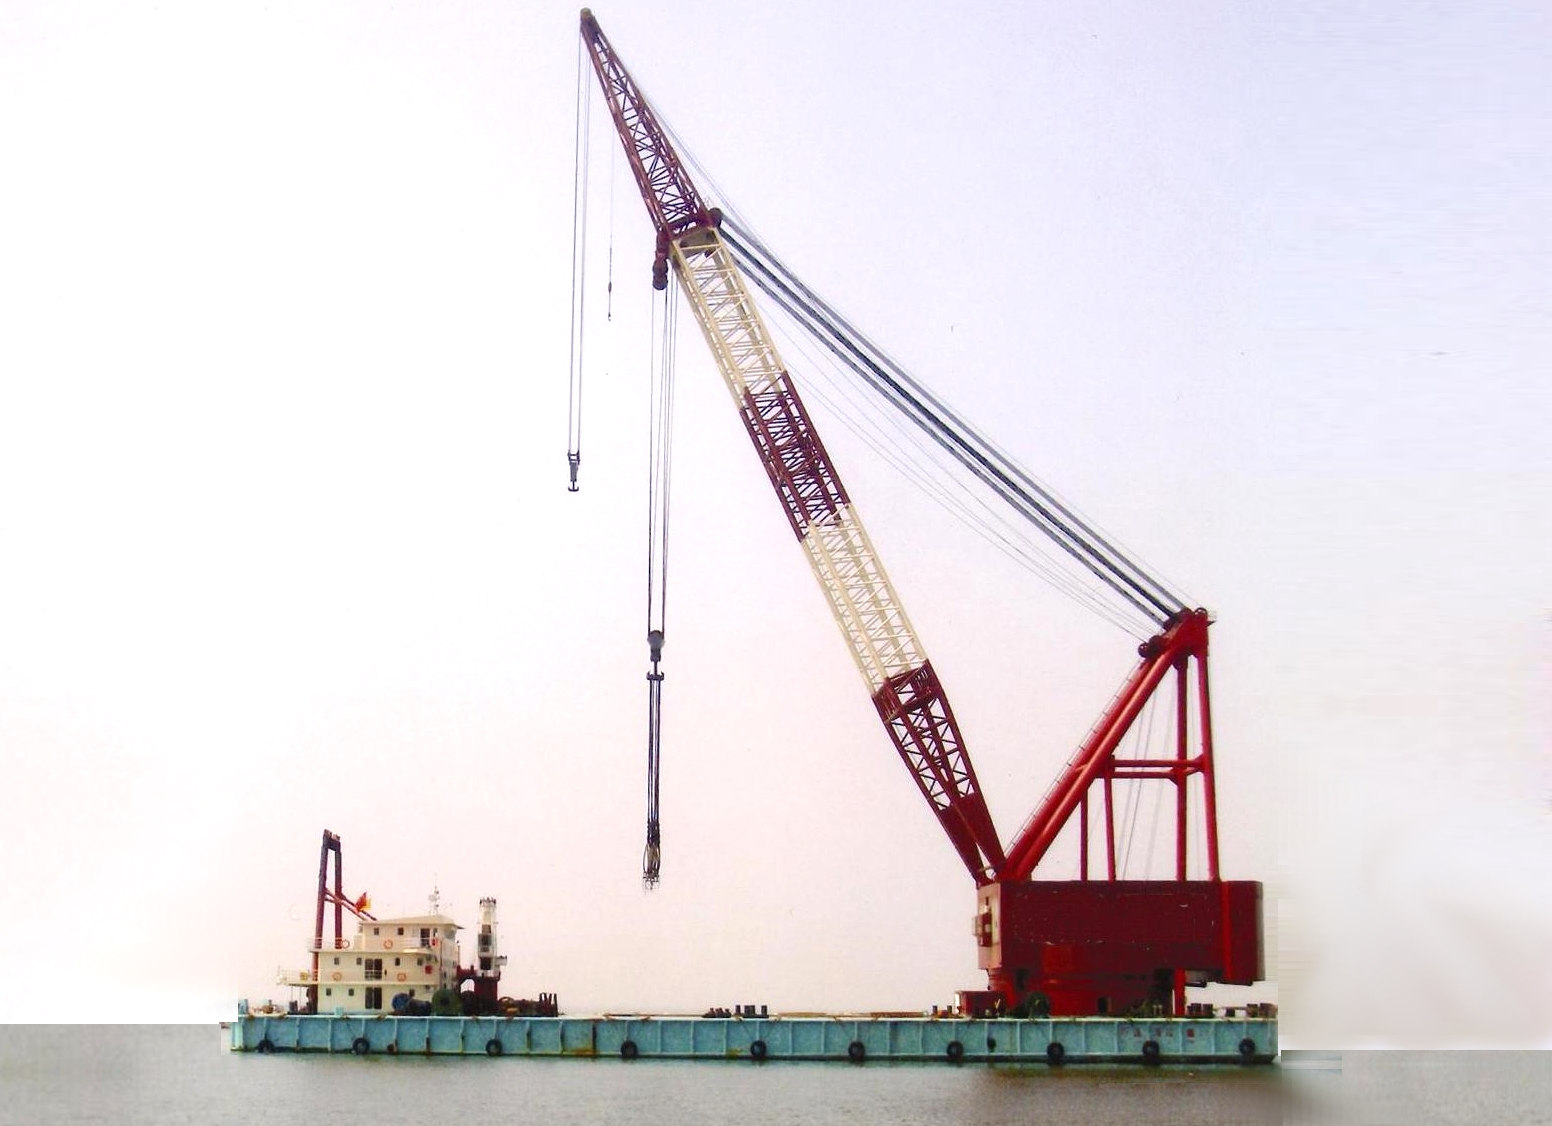 1000 Tons Floating Crane Self Propelled for Sale or Charter File-228